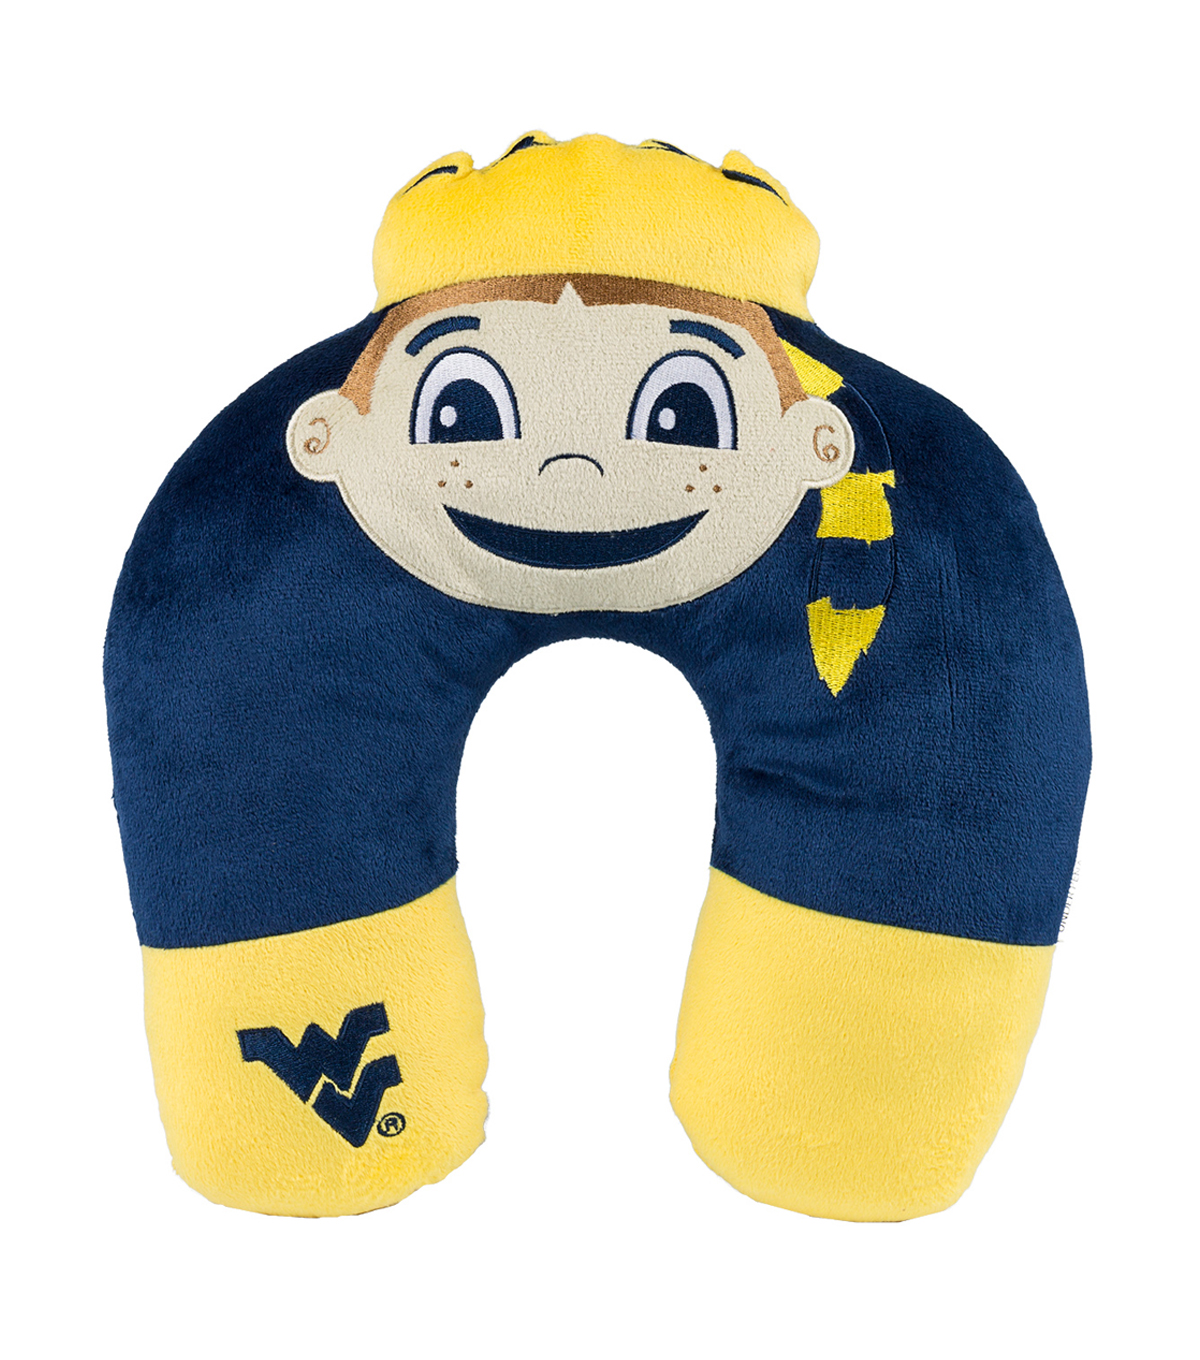 West Virginia University Mountaineers Neck Pillow